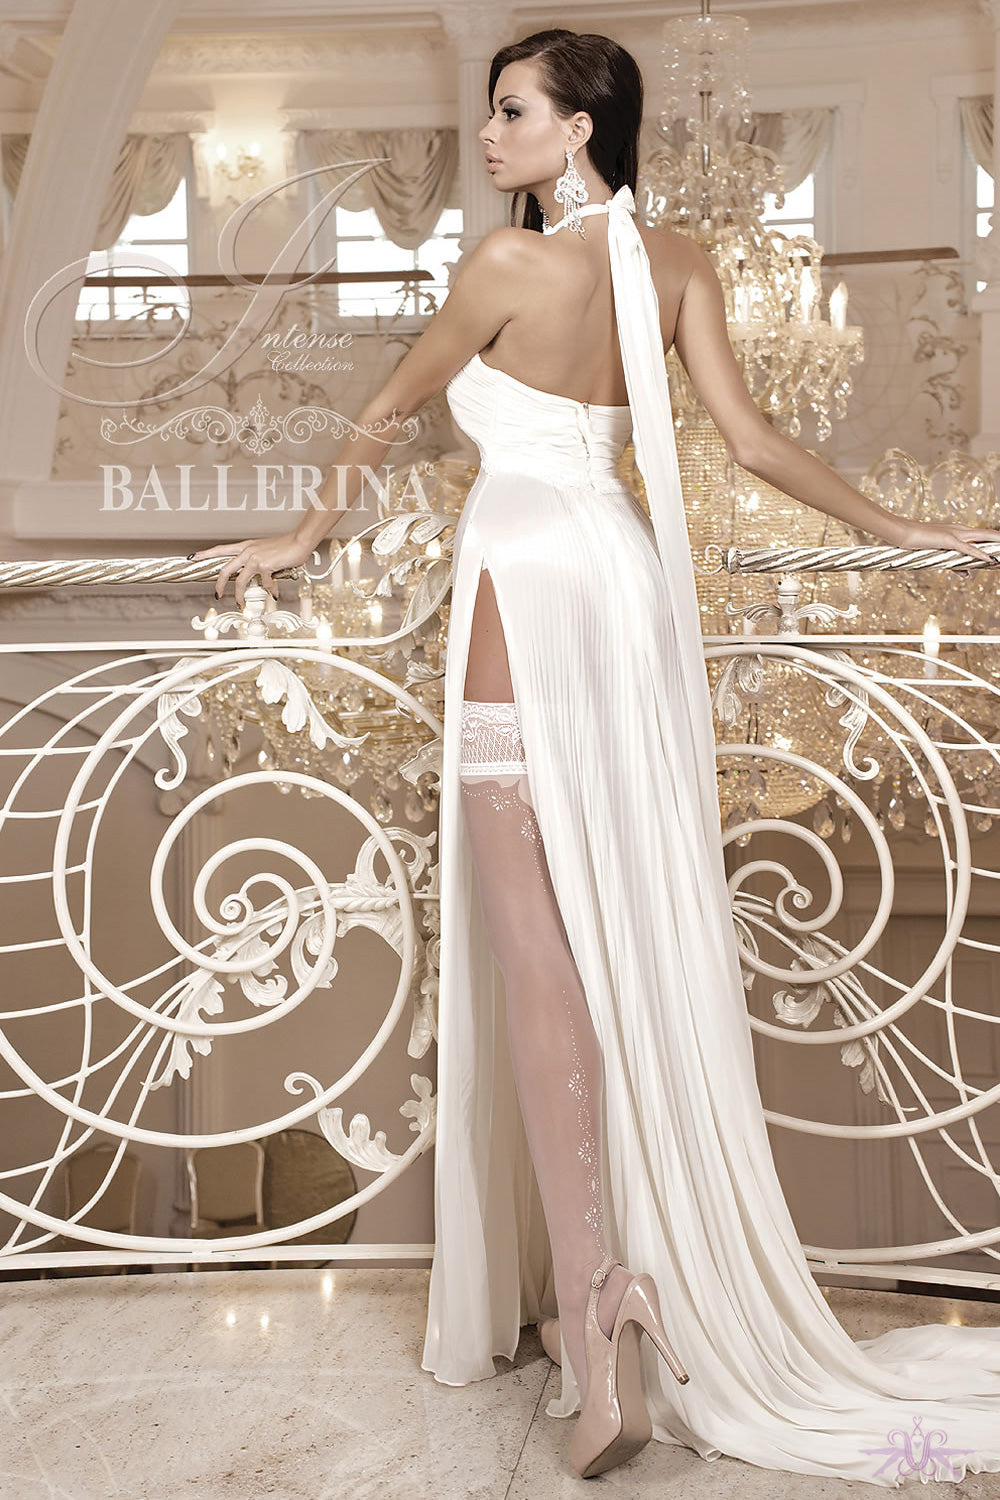 Ballerina Back Seam Bridal Hold Ups - Mayfair Stockings - Ballerina - Hold Ups - 1